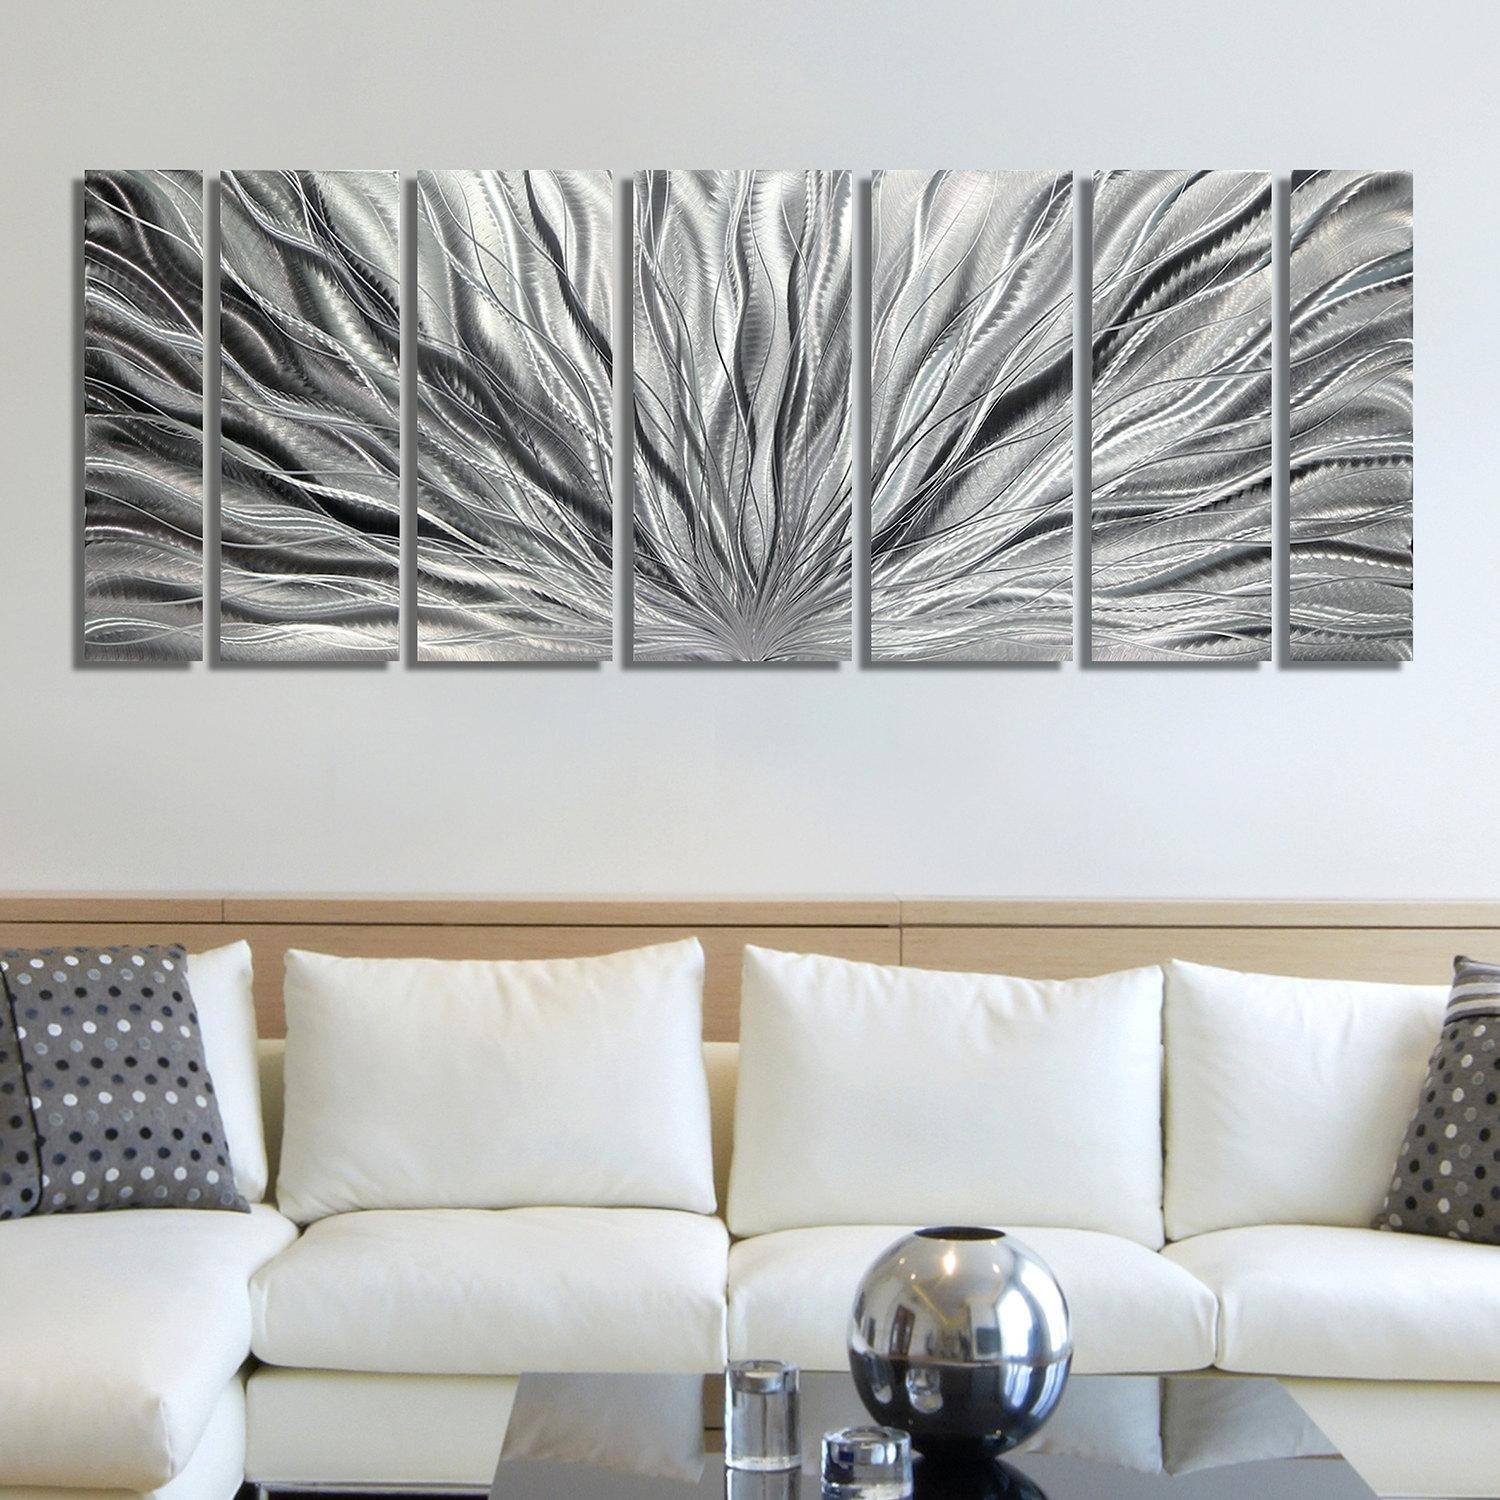 Sale Large Multi Panel Metal Wall Art In All Silver Intended For Large Metal Art (Image 15 of 20)